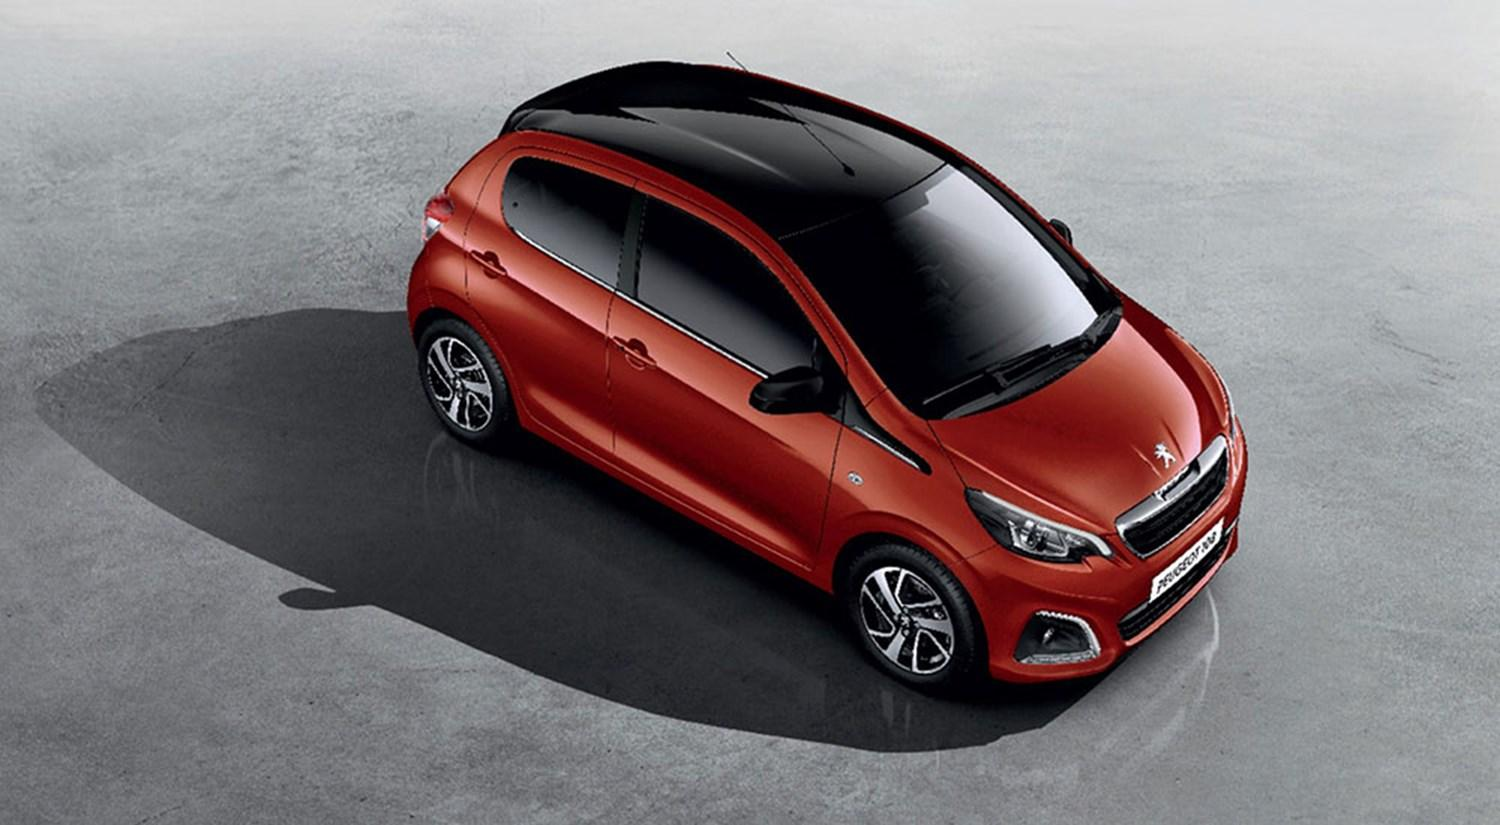 Red Peugeot 108 with black roof parked in studio